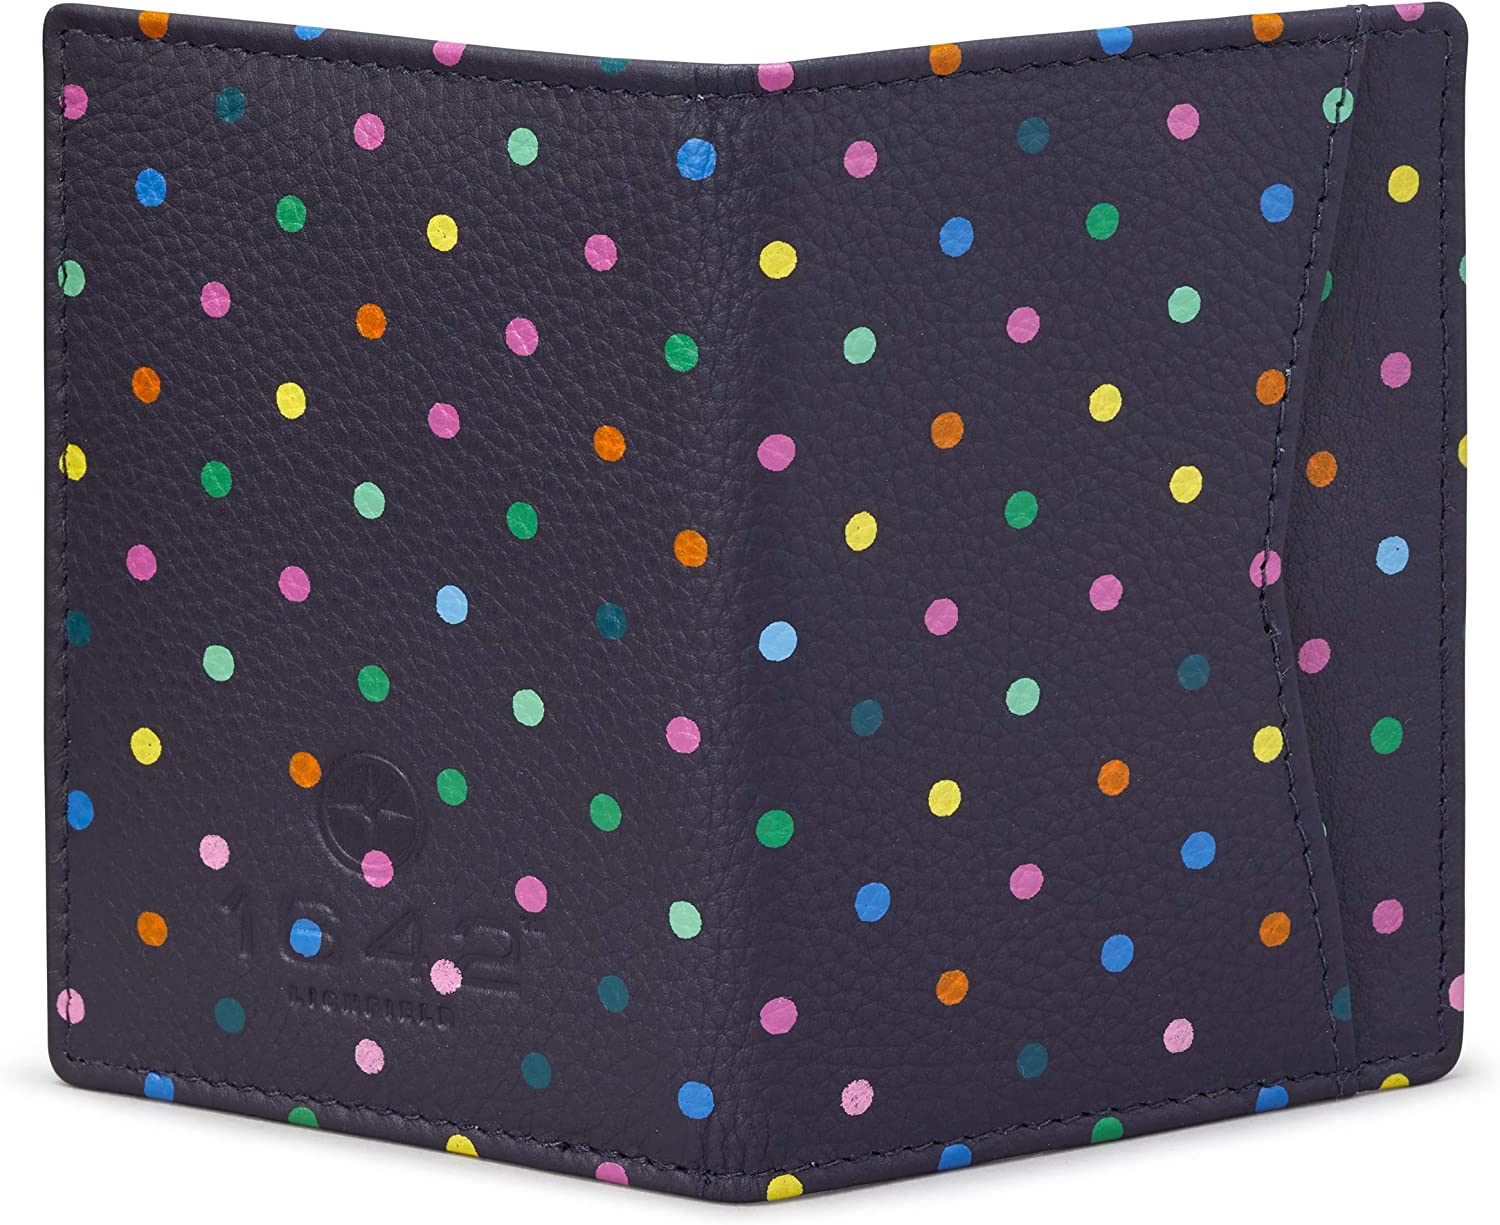 Polka Dot Leather Oyster Card Holder//Travel Pass Holder by 1642 Navy